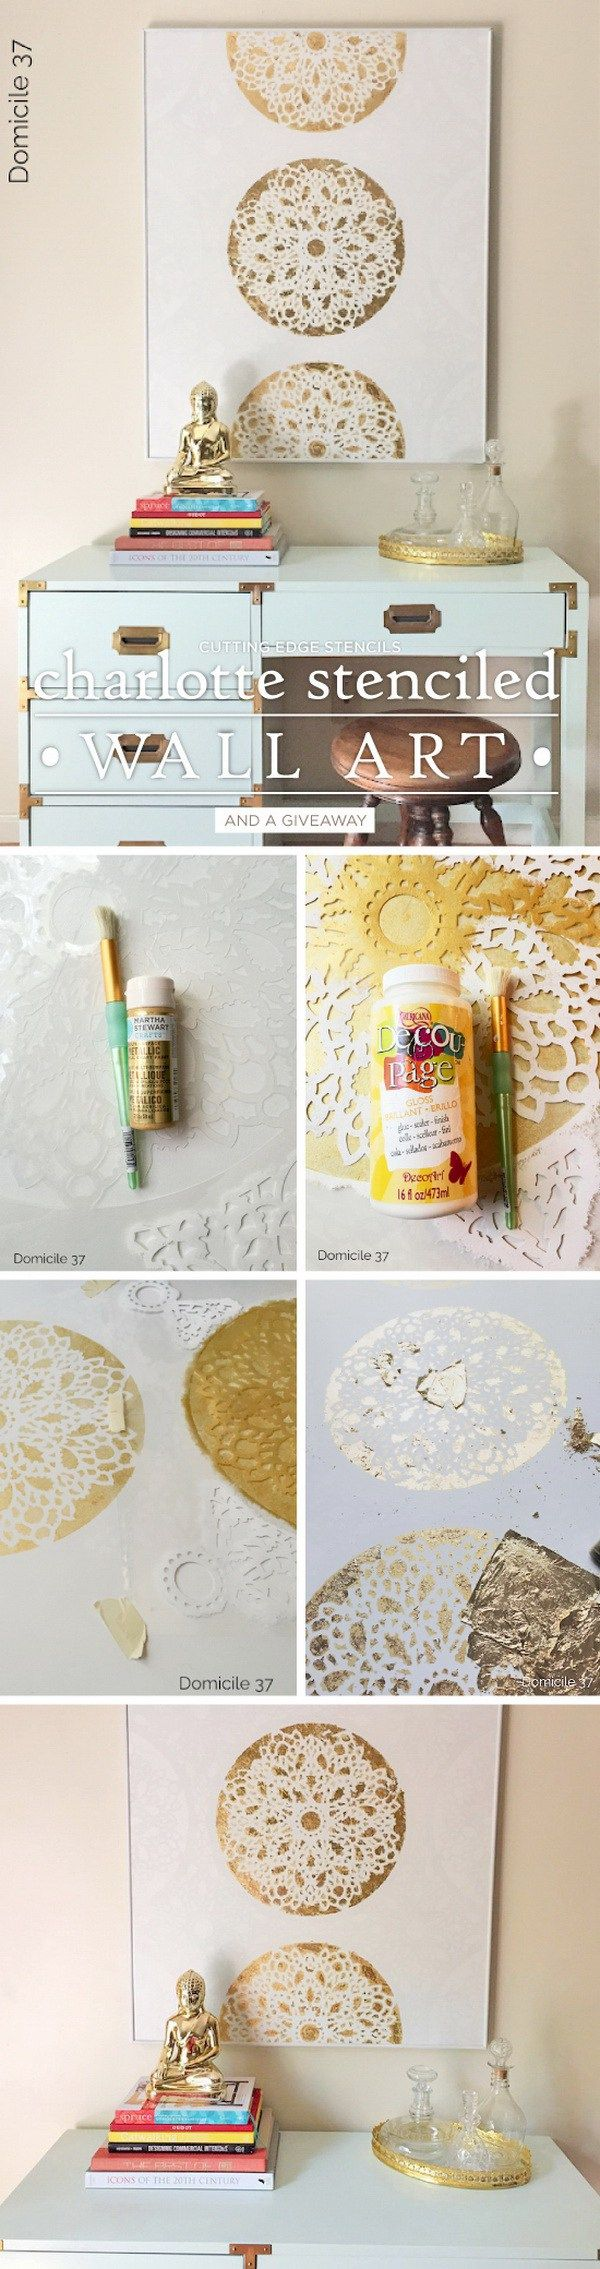 DIY Charlotte Stenciled Gold Wall Art.